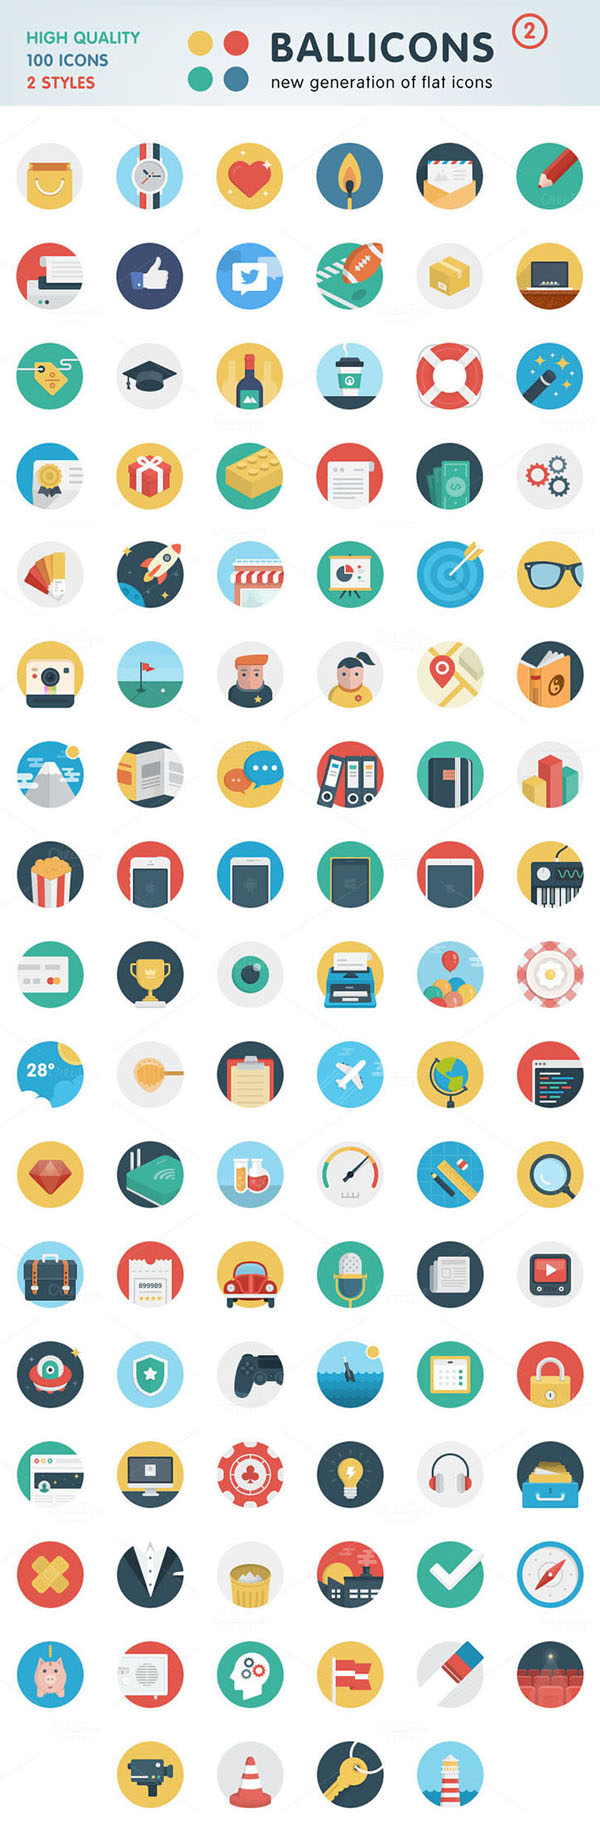 Ballicons 2 Bundle (200 icons)